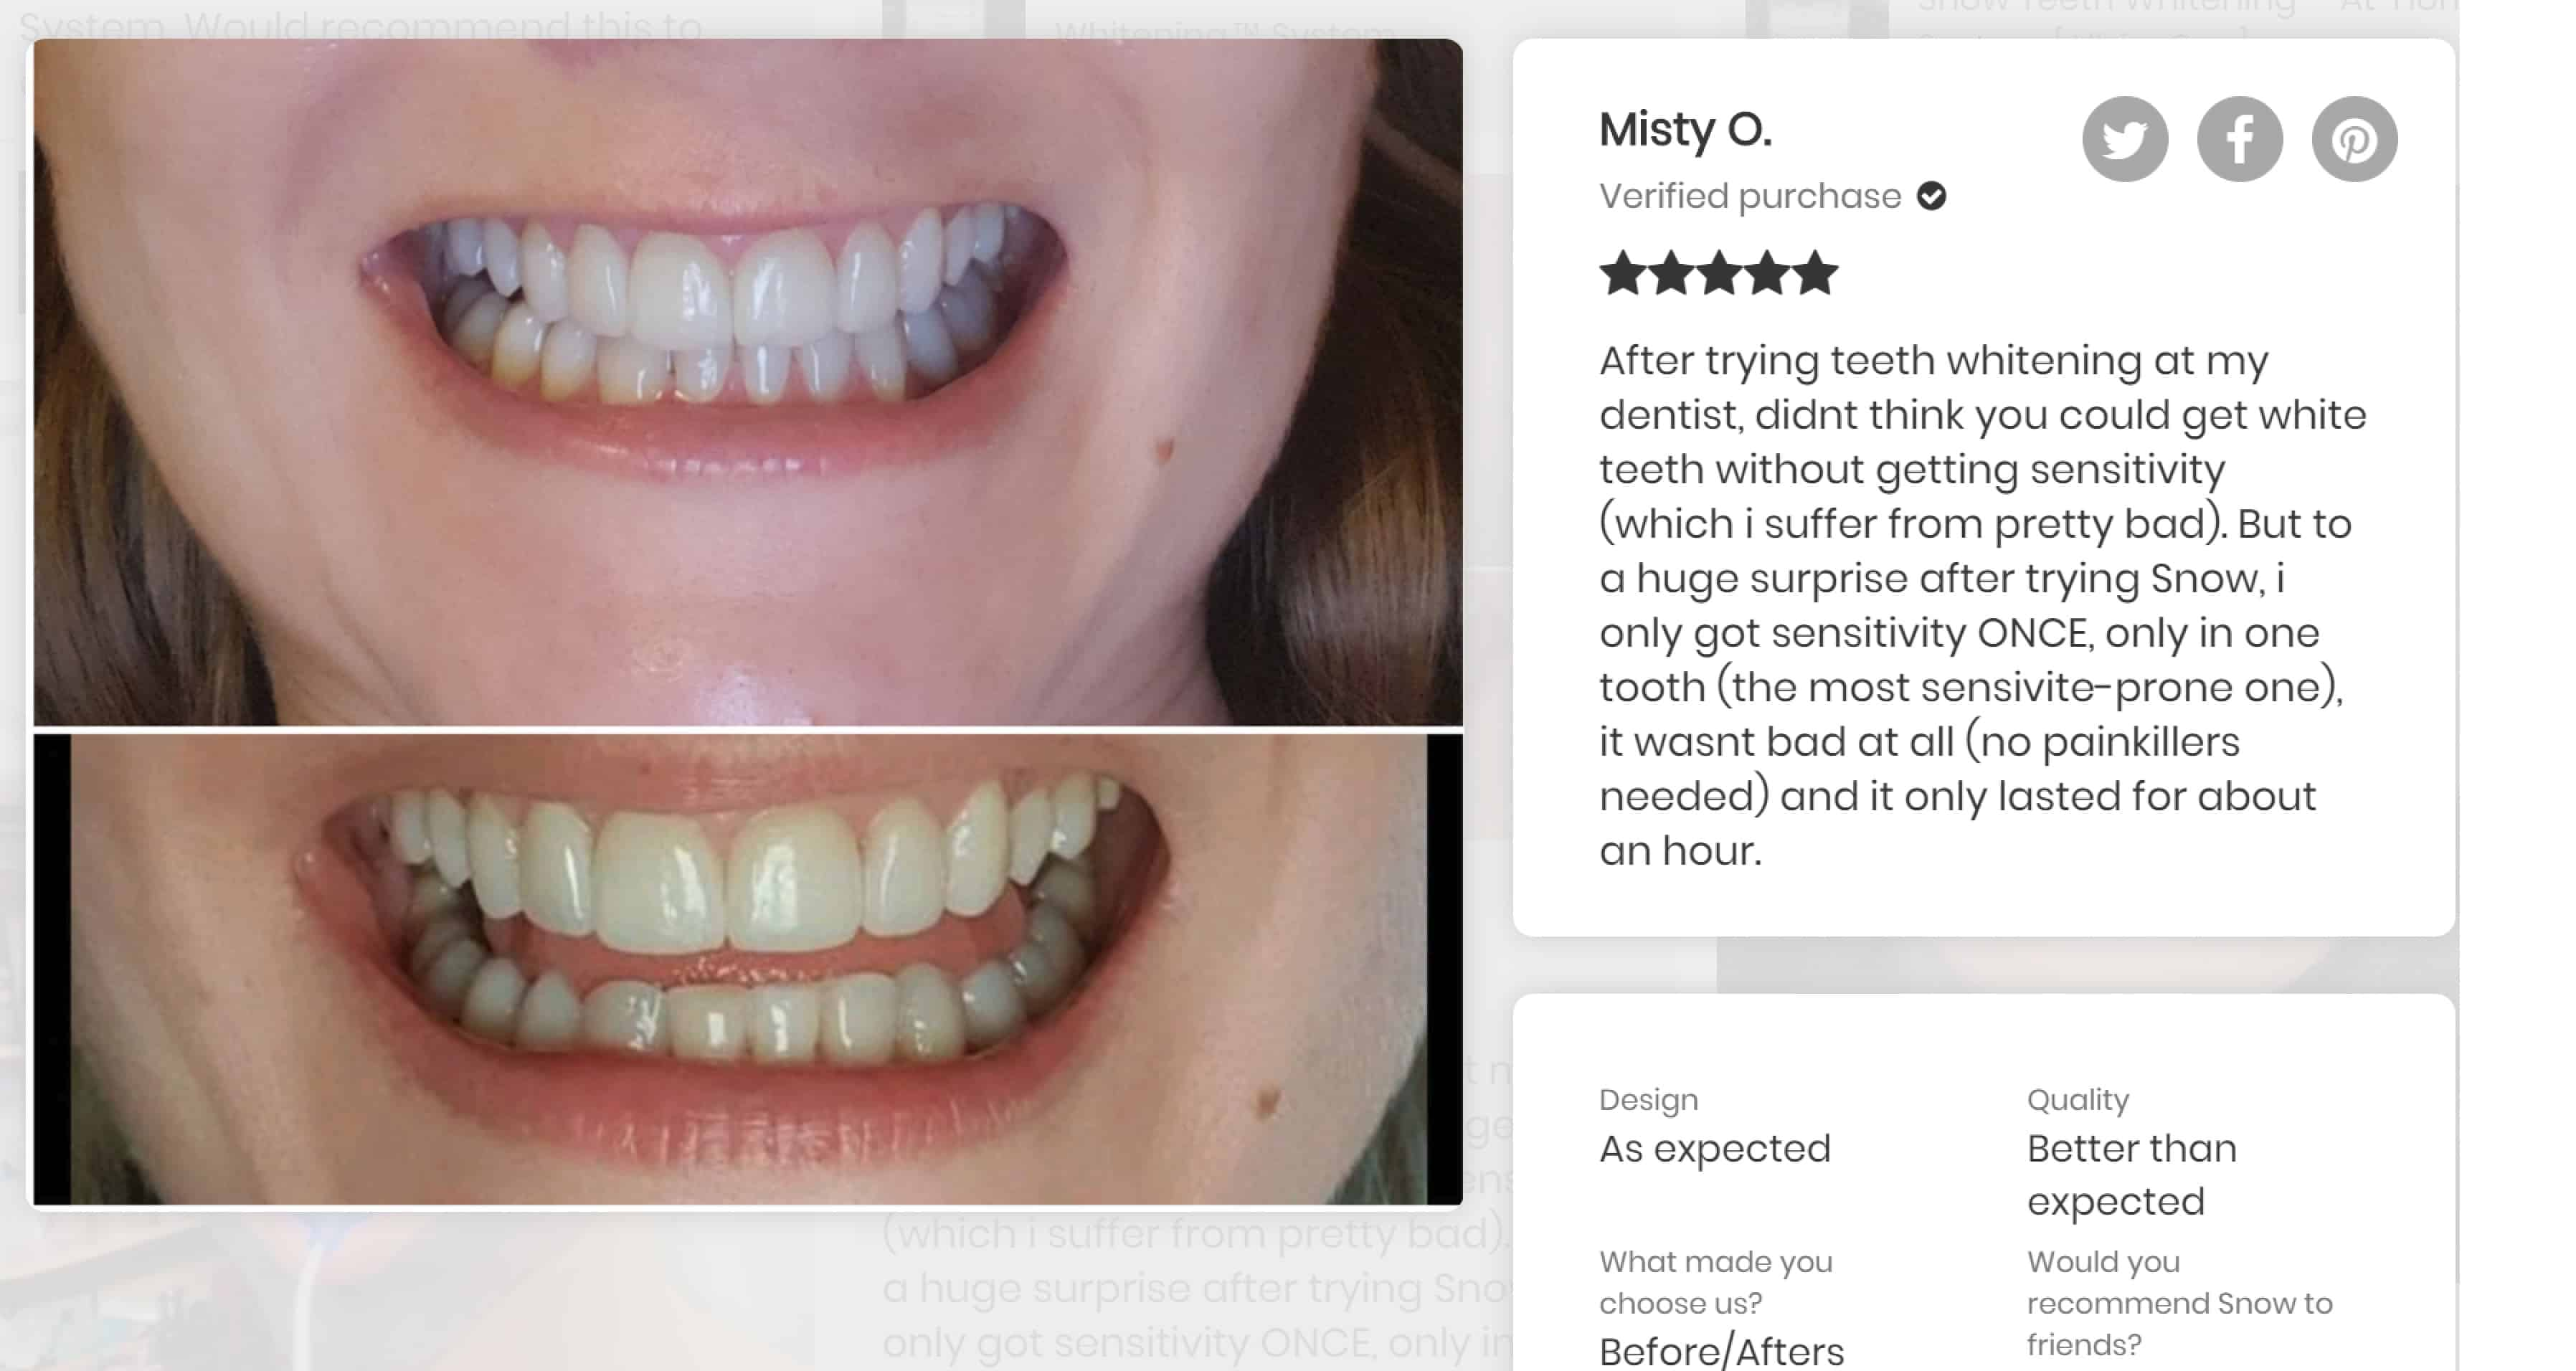 Nuova White Teeth Whitening Reviews